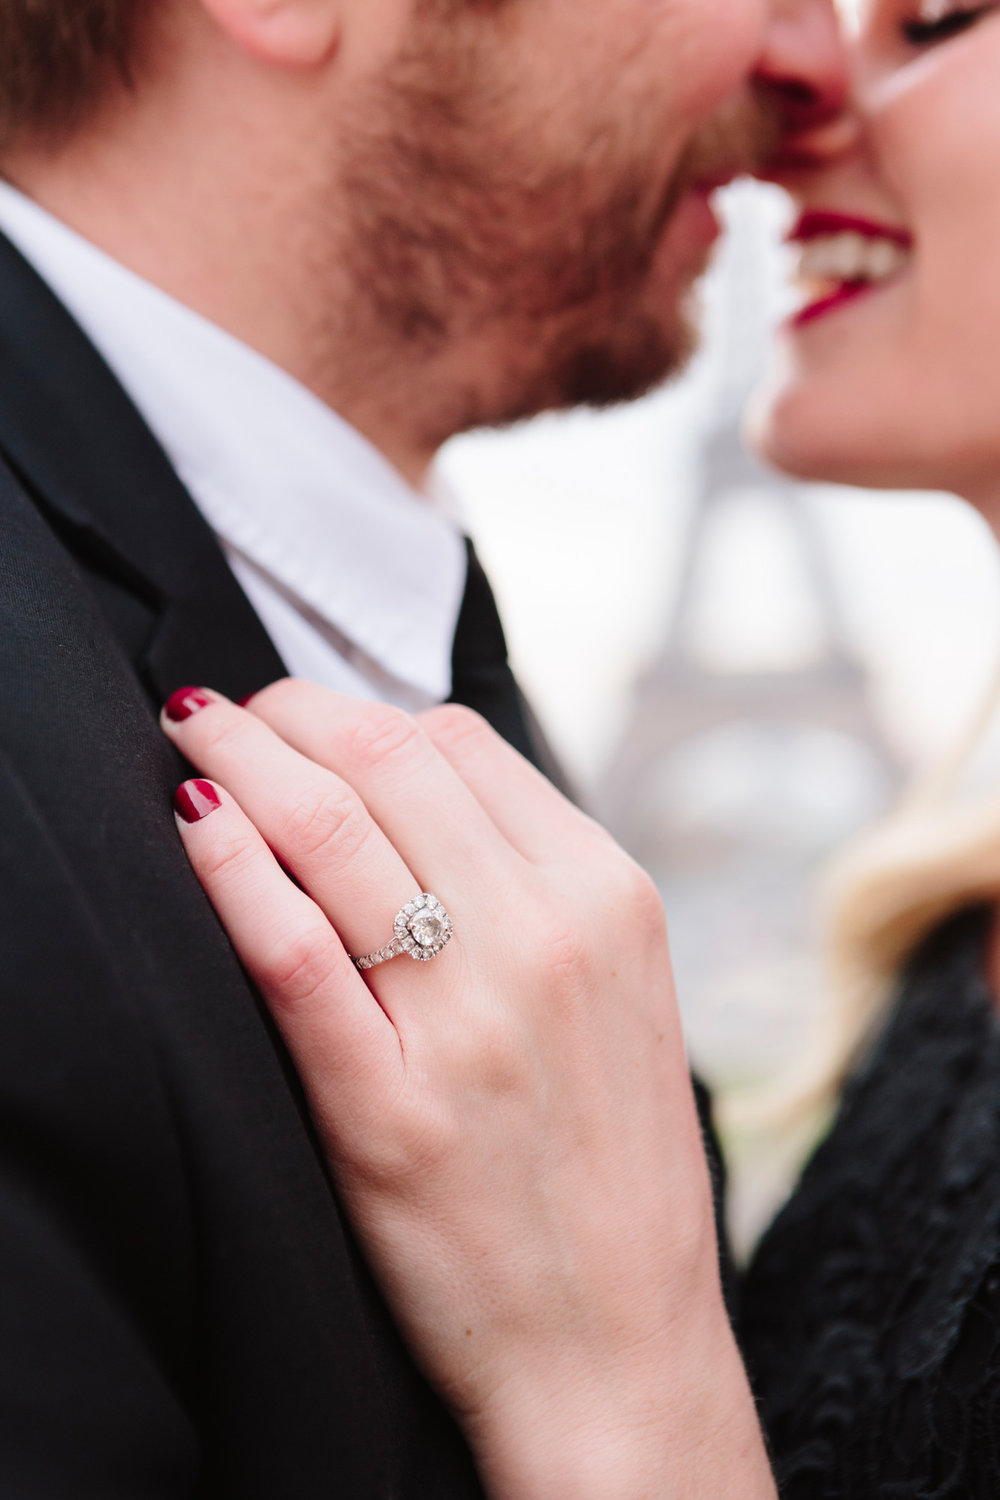 Engagement ring close up photograph next to the Eiffel tower captured by Paris Photographer Federico Guendel